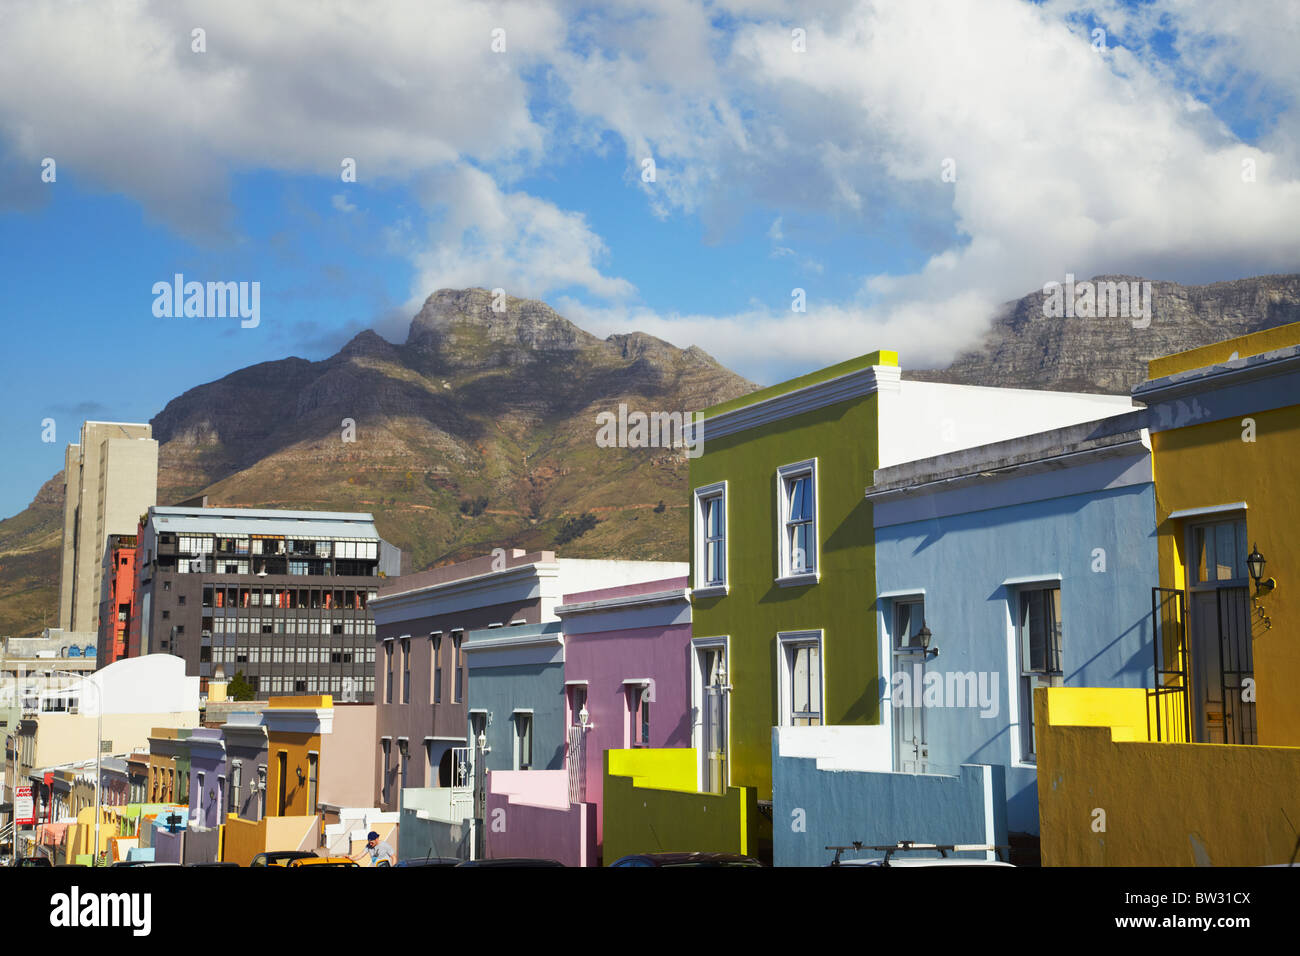 Colourful houses, Bo-Kaap, Cape Town, Western Cape, South Africa - Stock Image